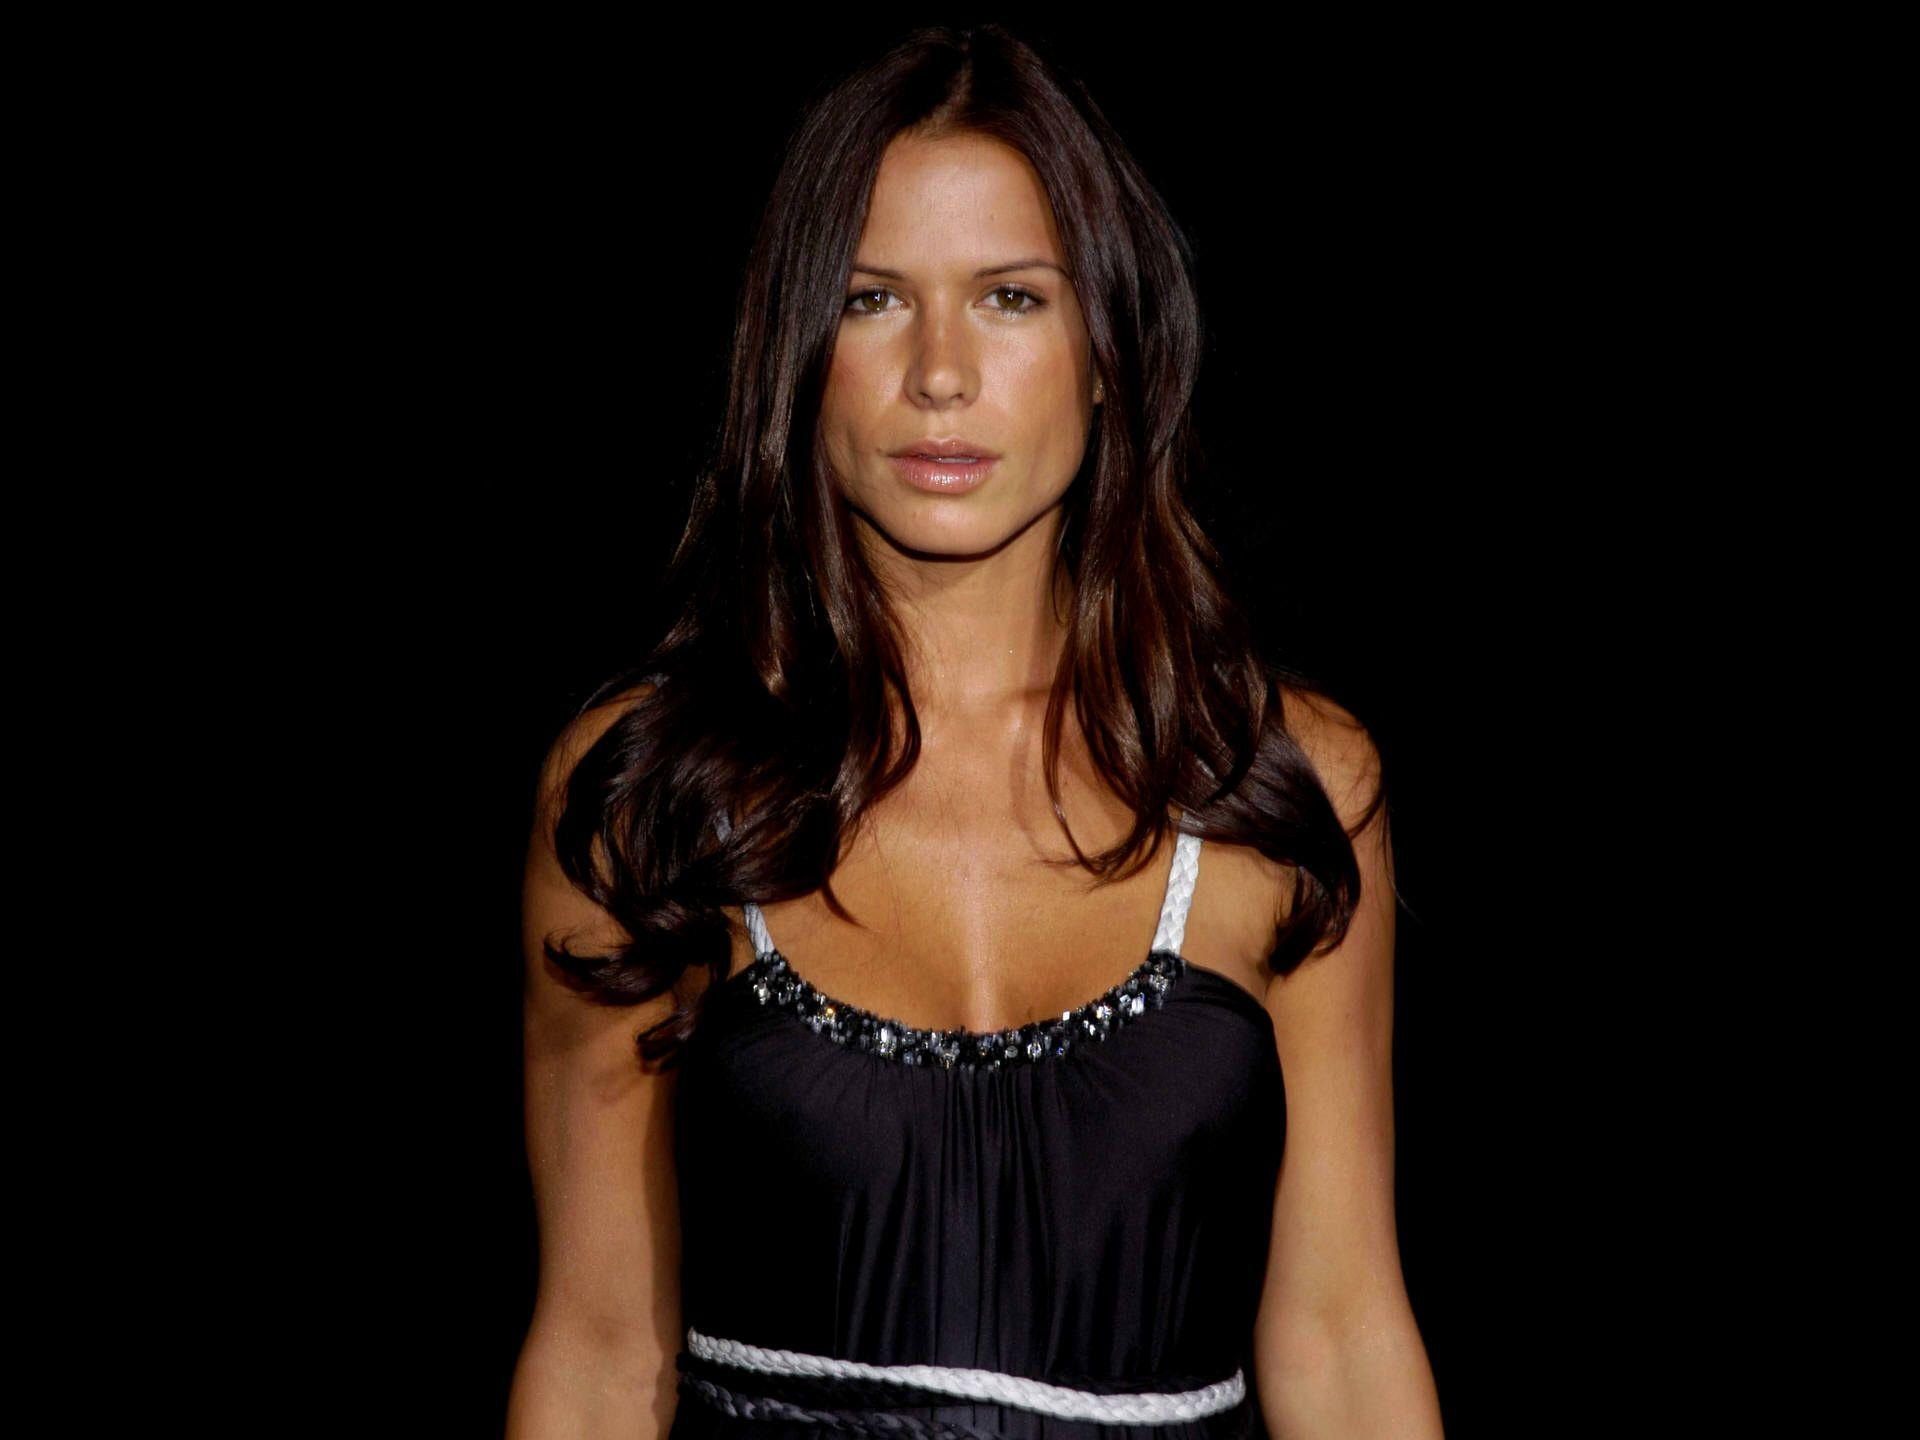 Hot Rhona Mitra nudes (59 photos), Topless, Bikini, Selfie, see through 2020